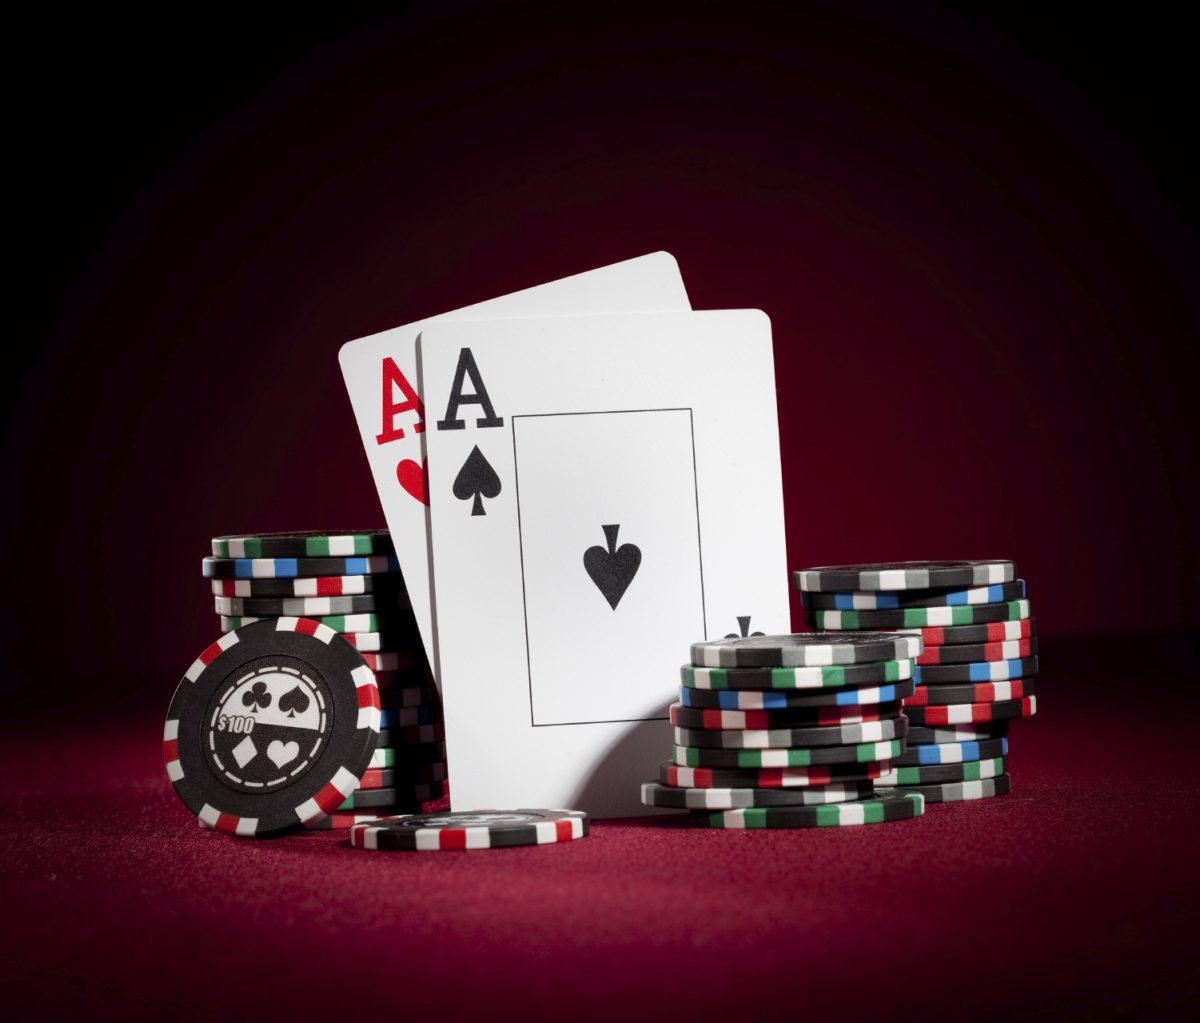 Poker: Types of players and styles of play